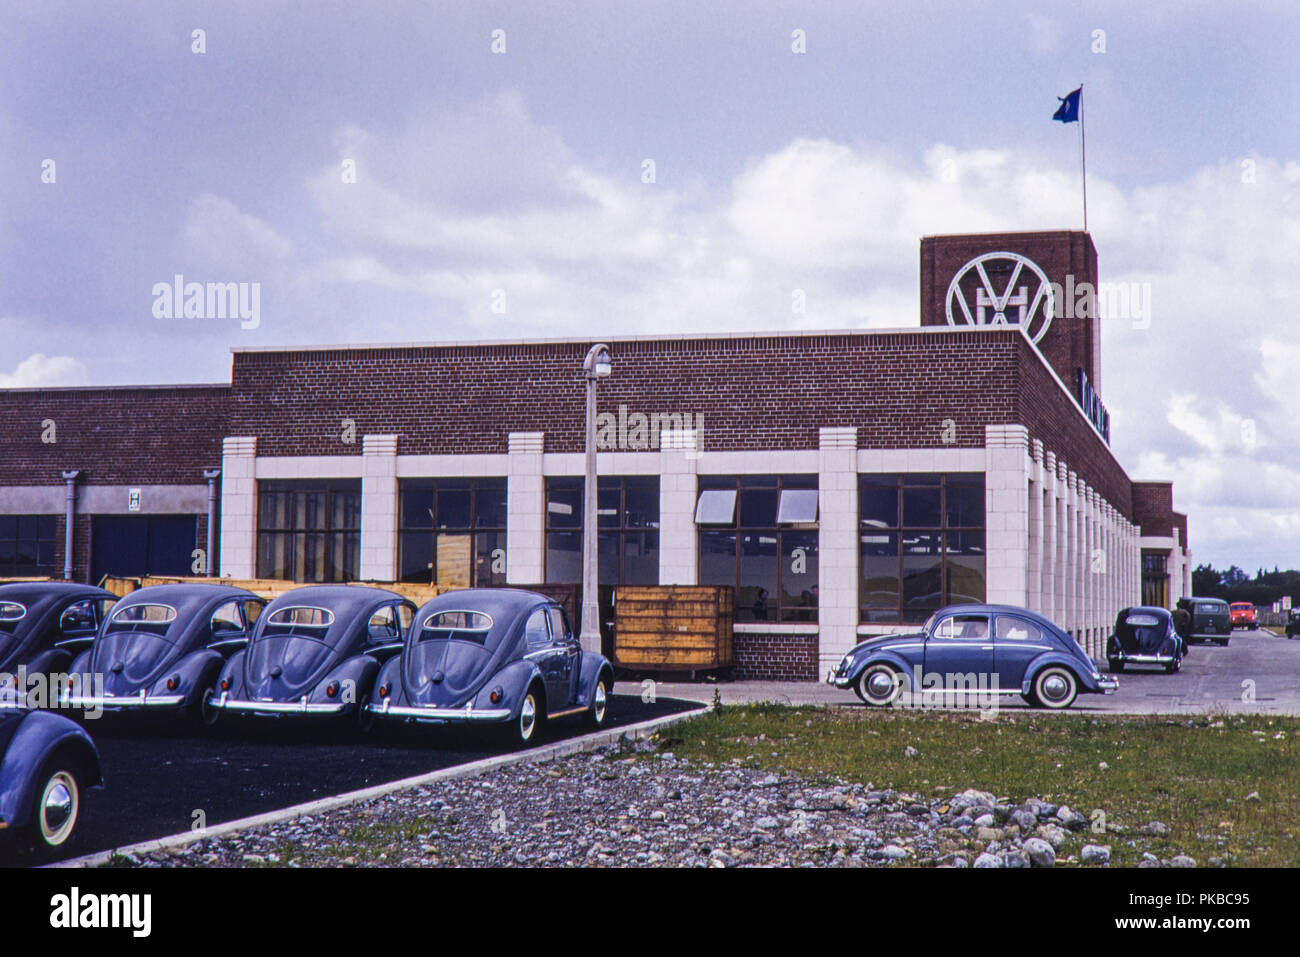 Volkswagen Beetle assembly plant Naas Road, Dublin, Republic of Ireland. Image taken on 14th June 1956 - Stock Image